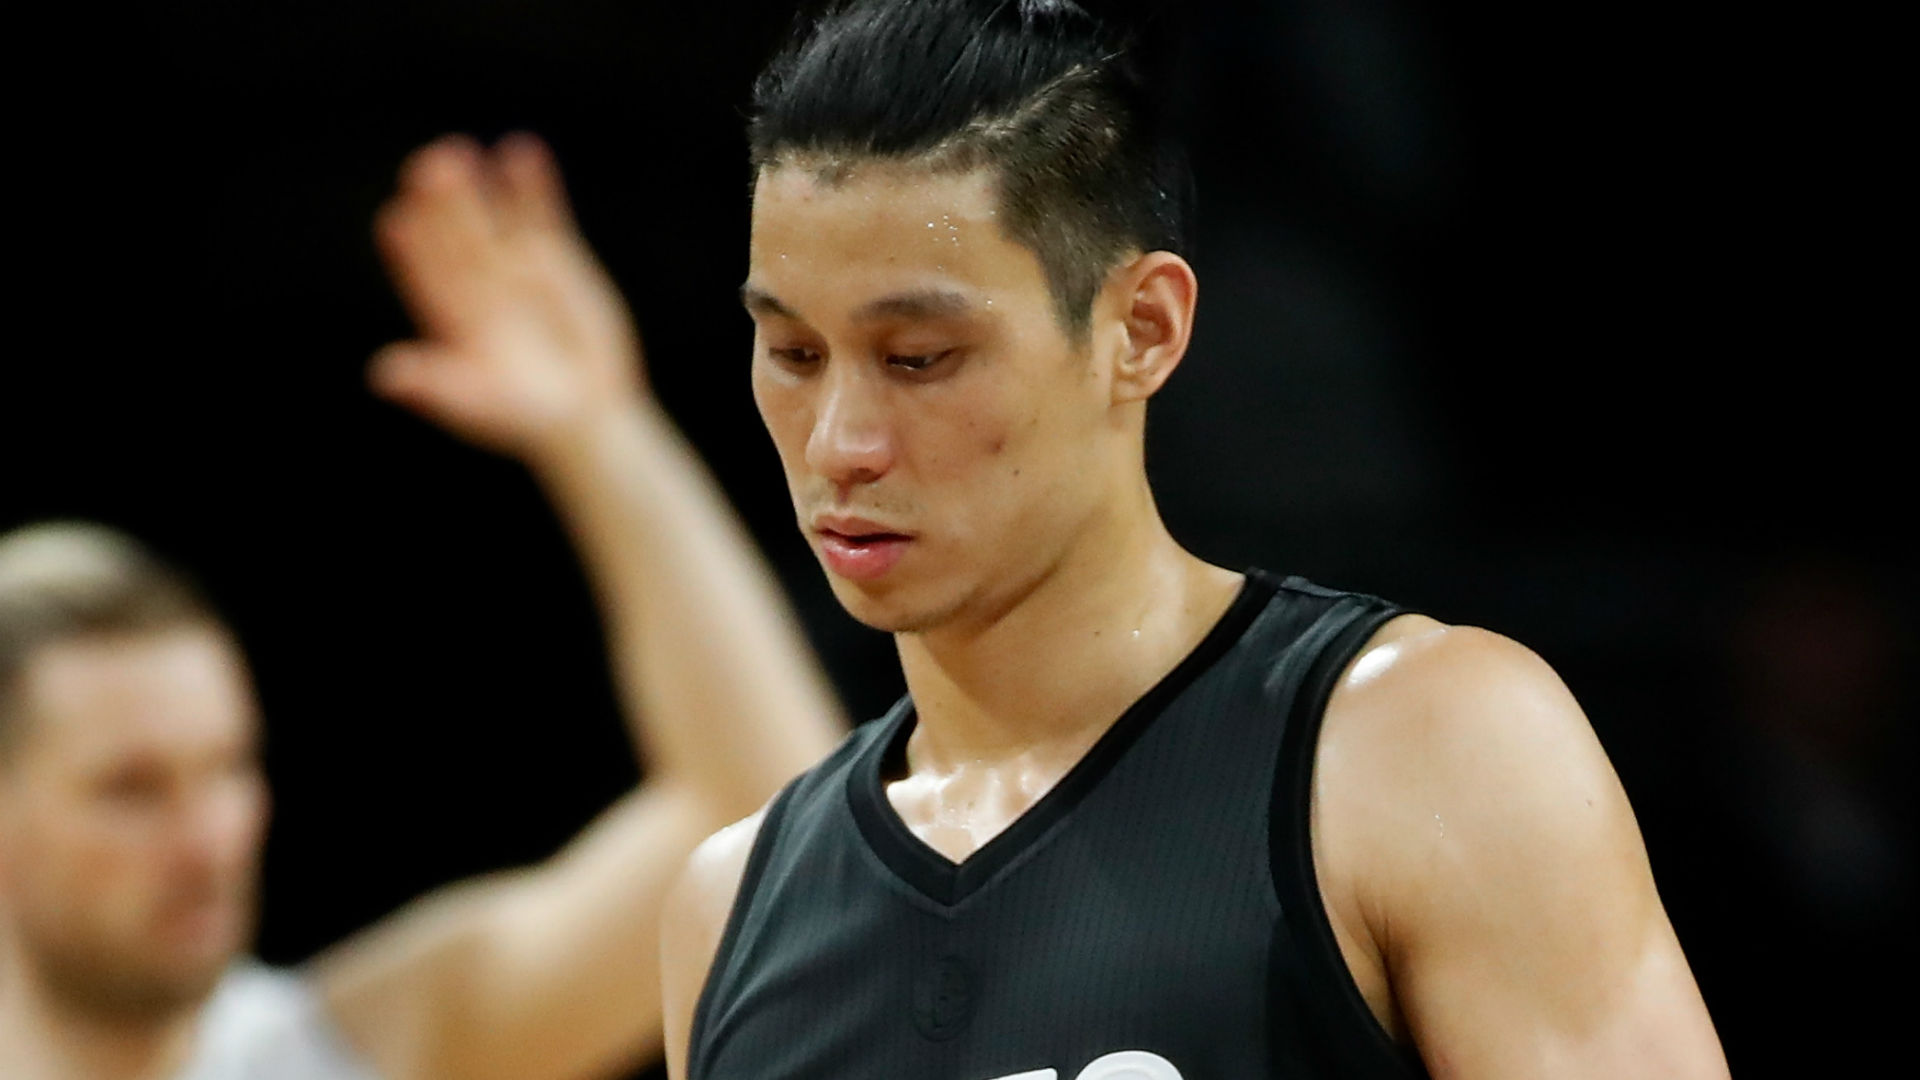 Jeremy Lin: Nets' Jeremy Lin Recalls Racism He's Faced While Playing